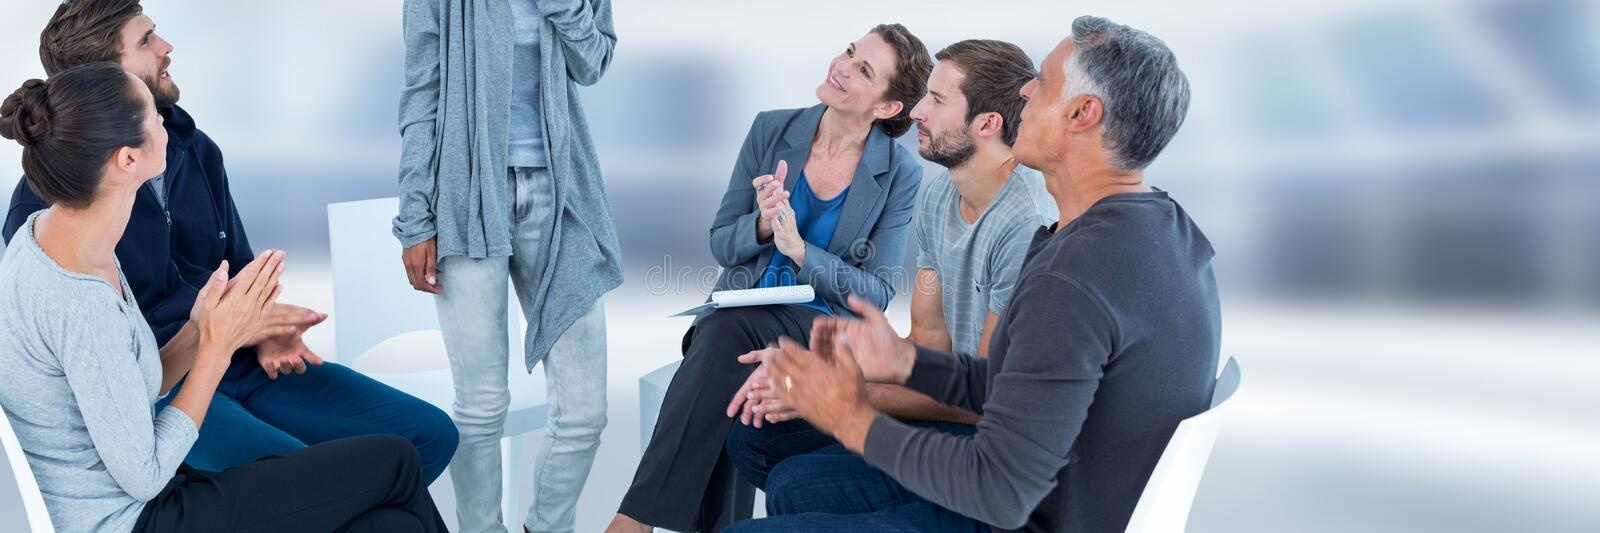 Group of People sitting in circle with ladt standing up and clapping hands stock photo